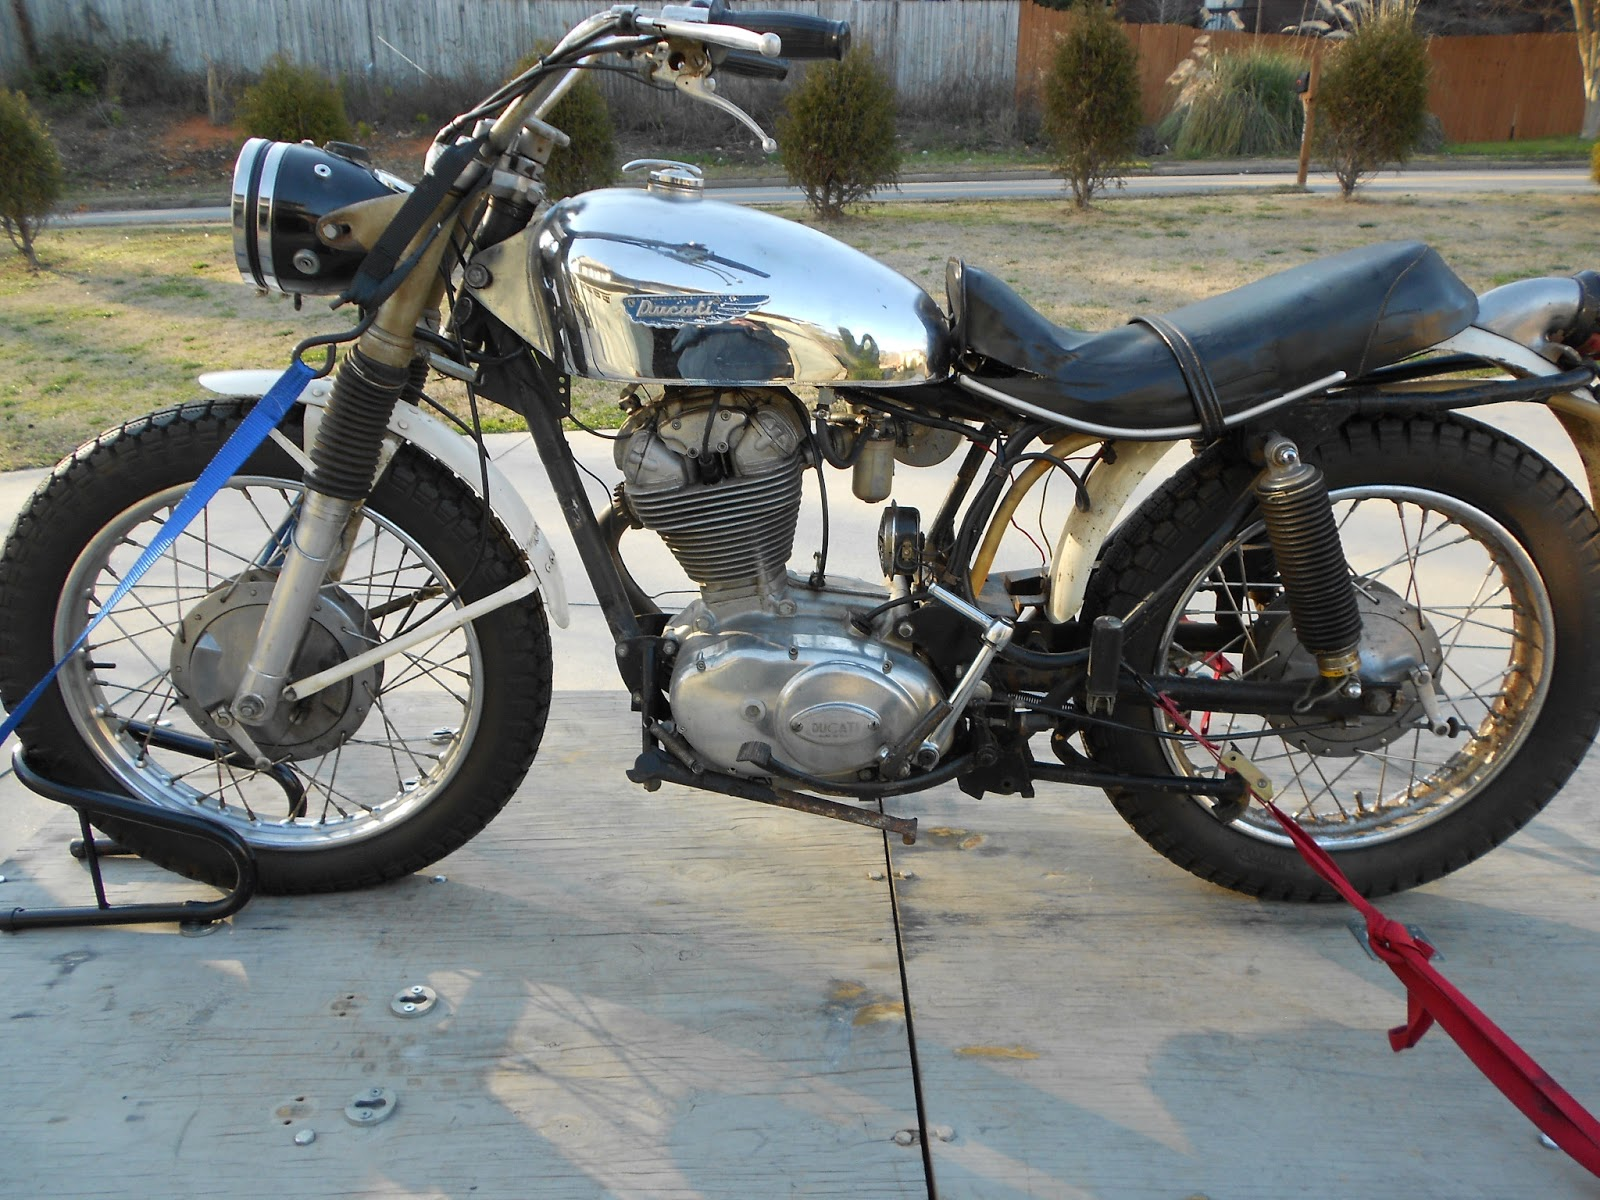 1969 Ducati Scrambler Restoration Darmah Wiring Loom Long Story Short We Loaded One Of The Scramblers Up Went To His Bank Arrange A Wire Transfer And Voila I Had My New Project